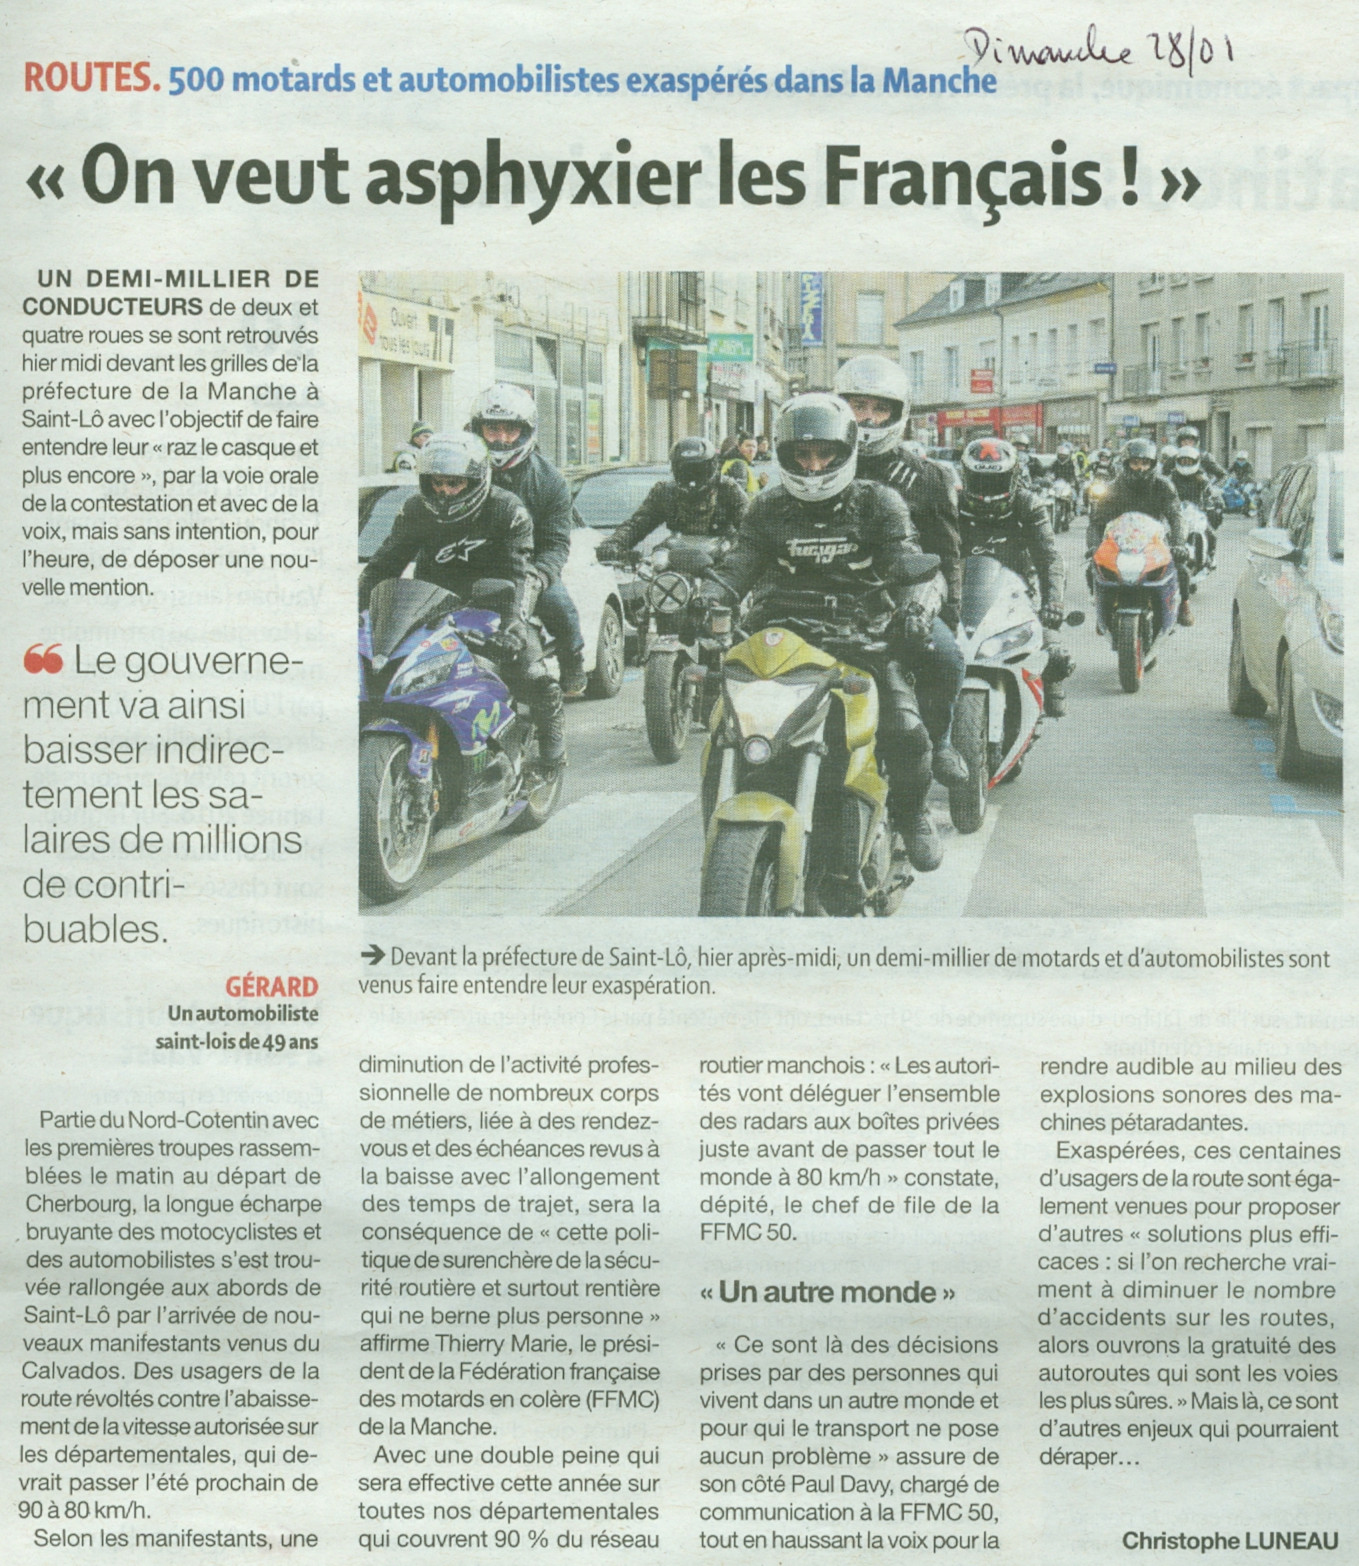 Manif 27 01 article Presse N1 v01